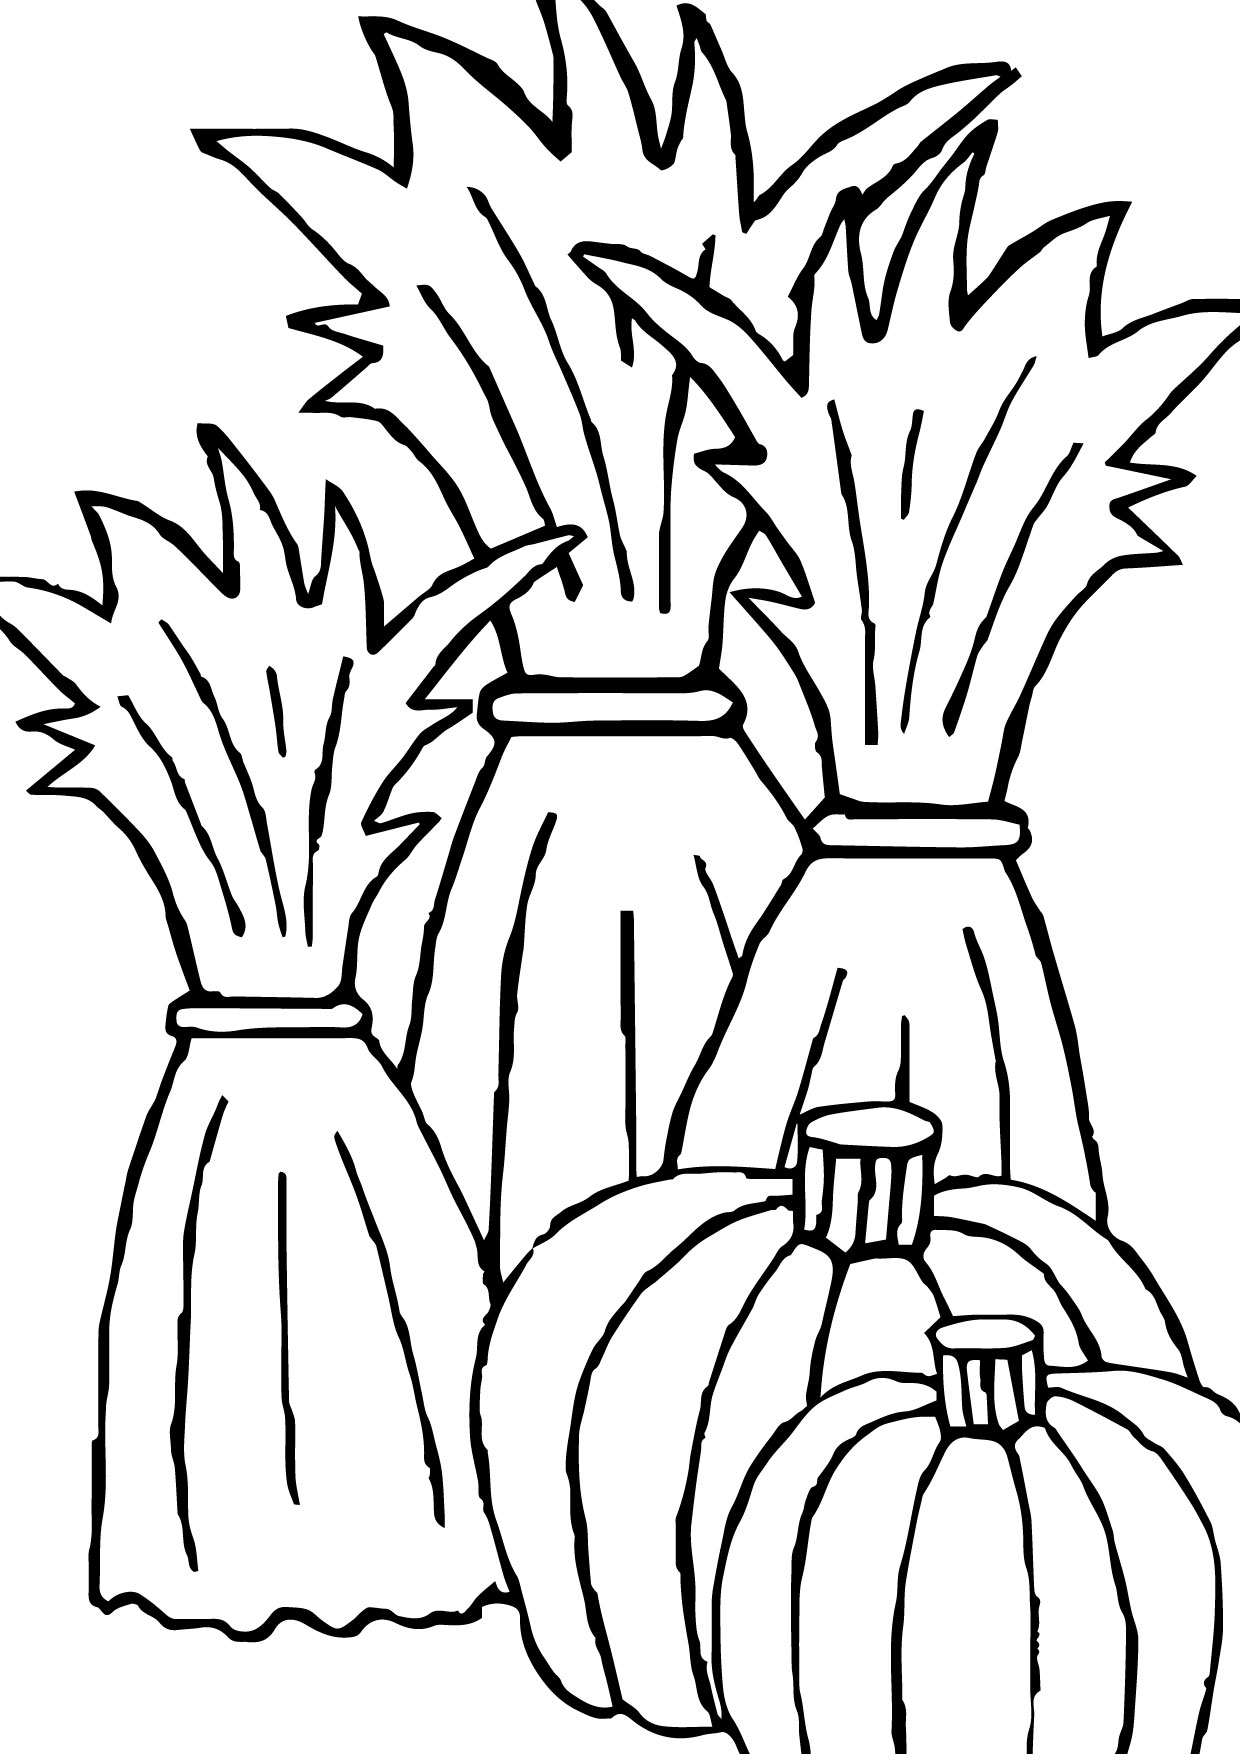 Hay Bale Coloring Page At Getcolorings